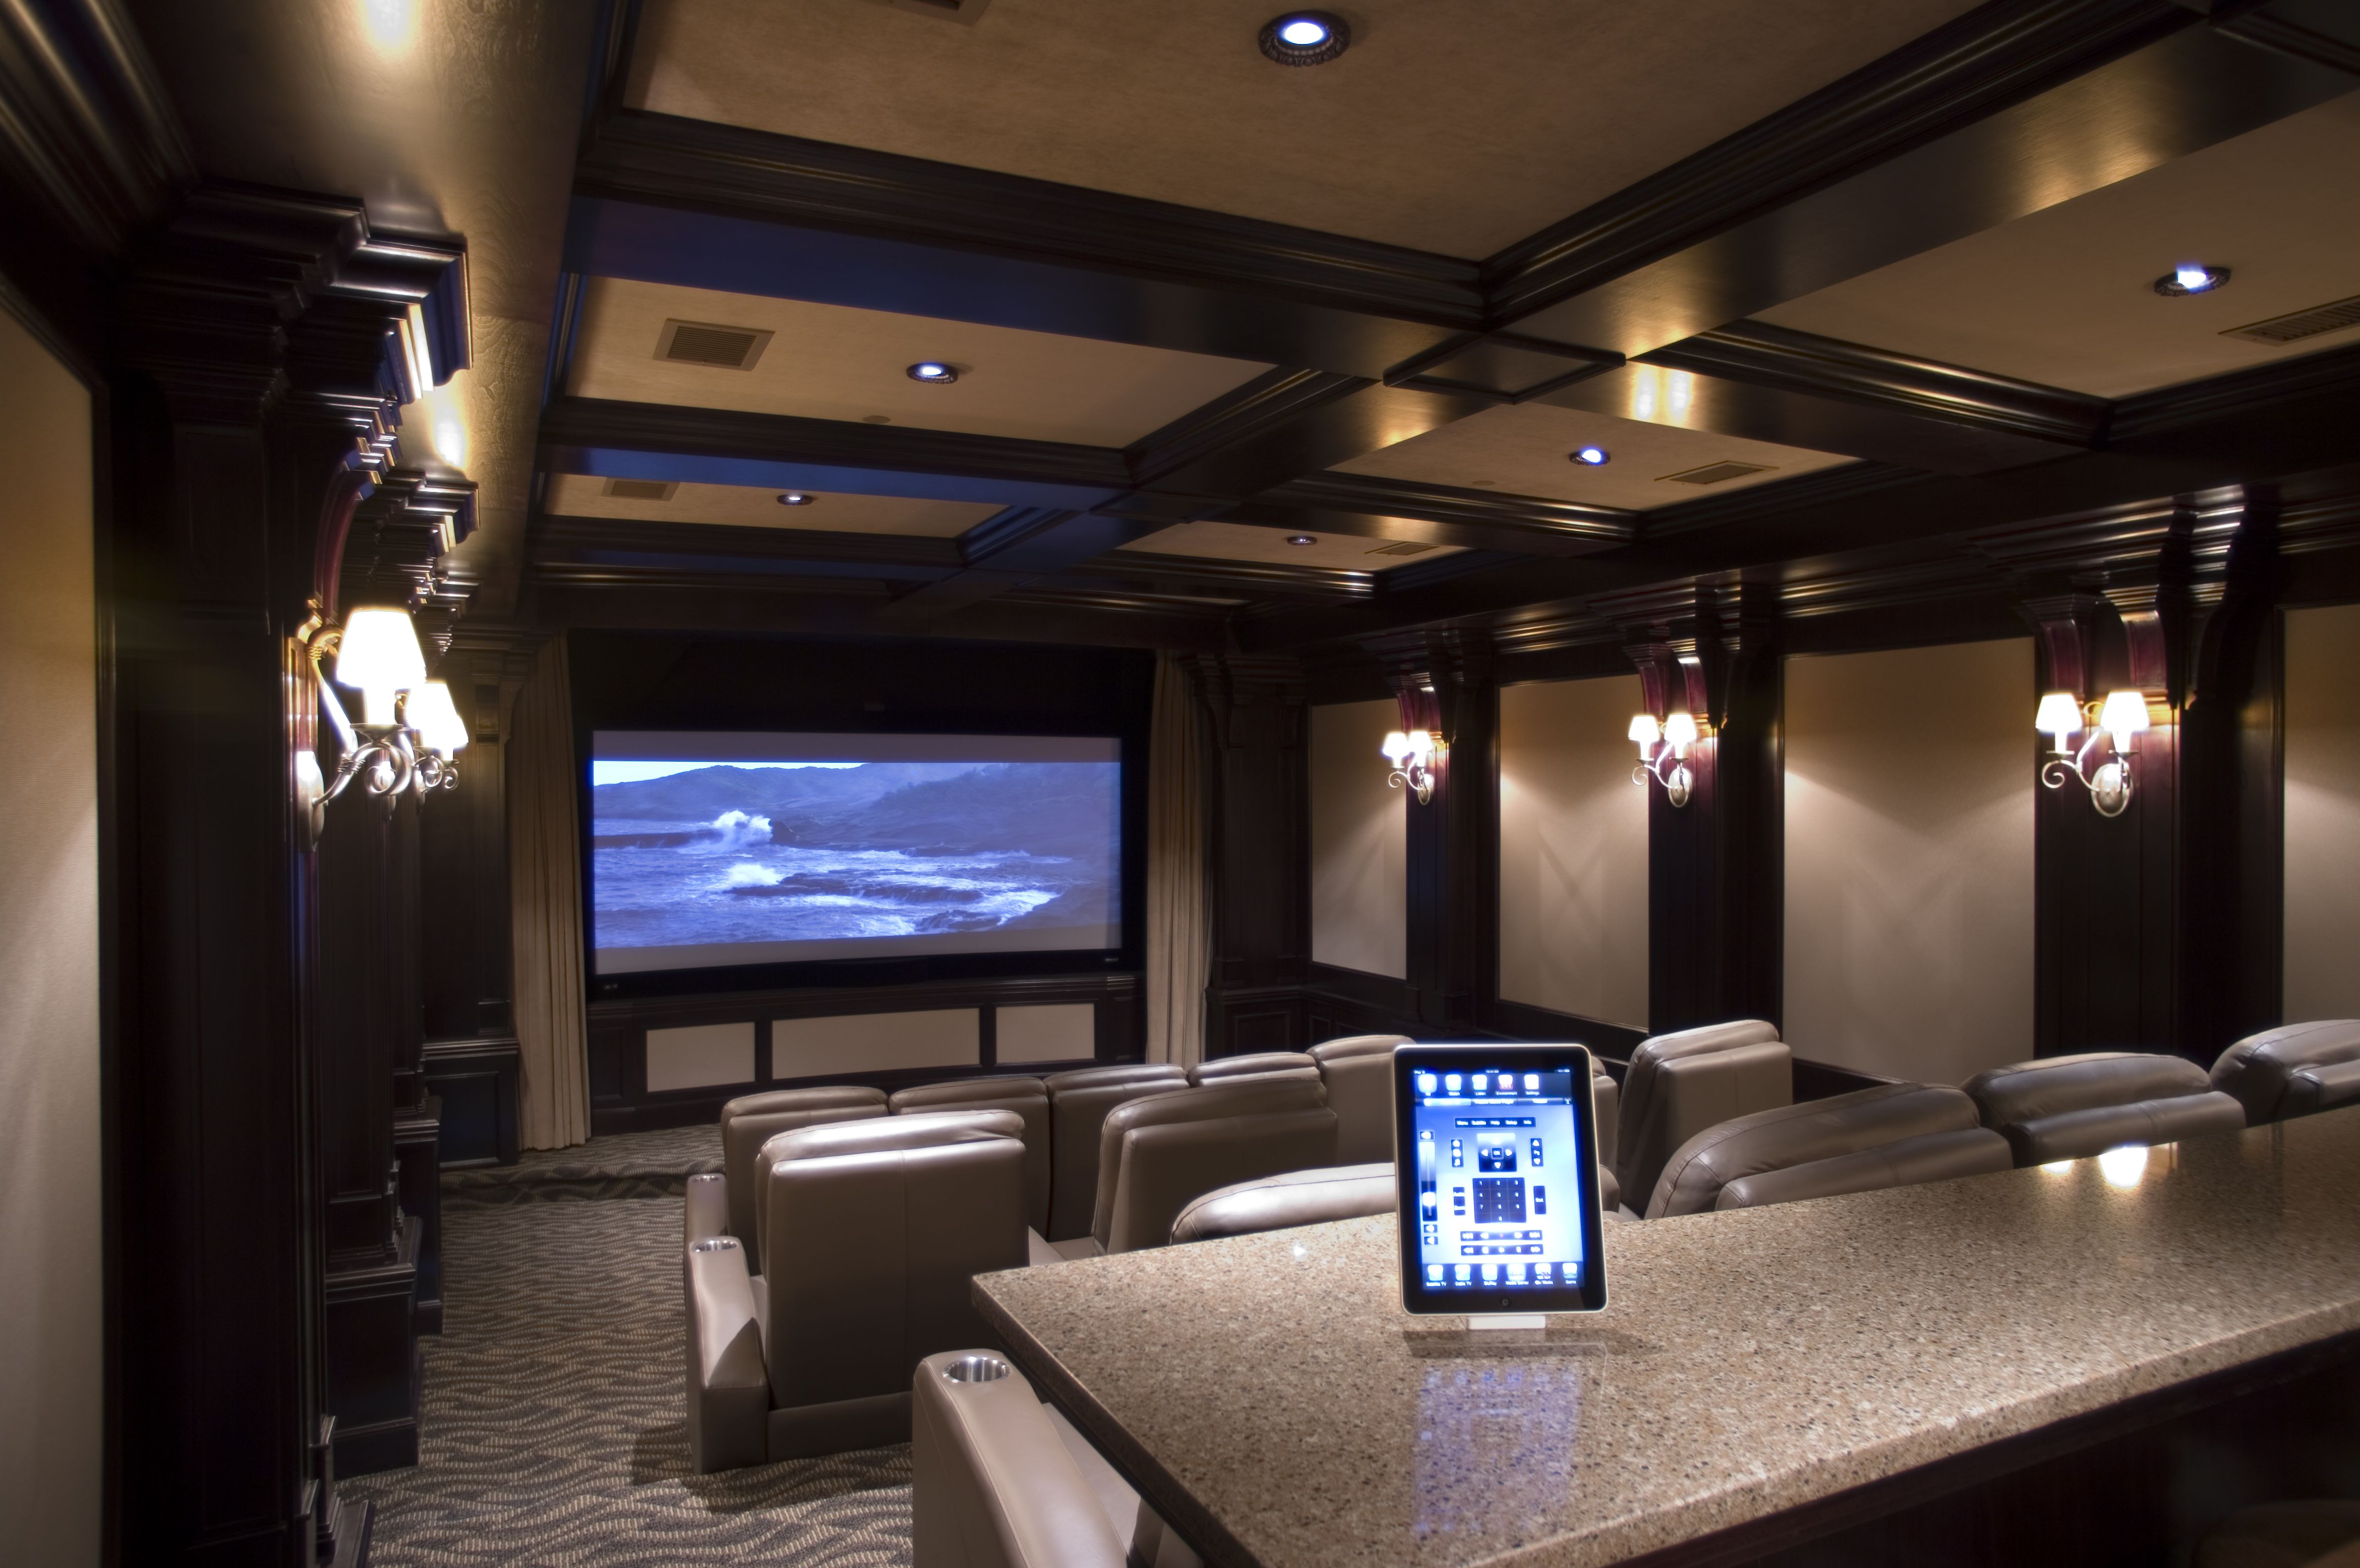 best images about home theater on pinterest theater southern home theatre ideas design - Home Theater Rooms Design Ideas